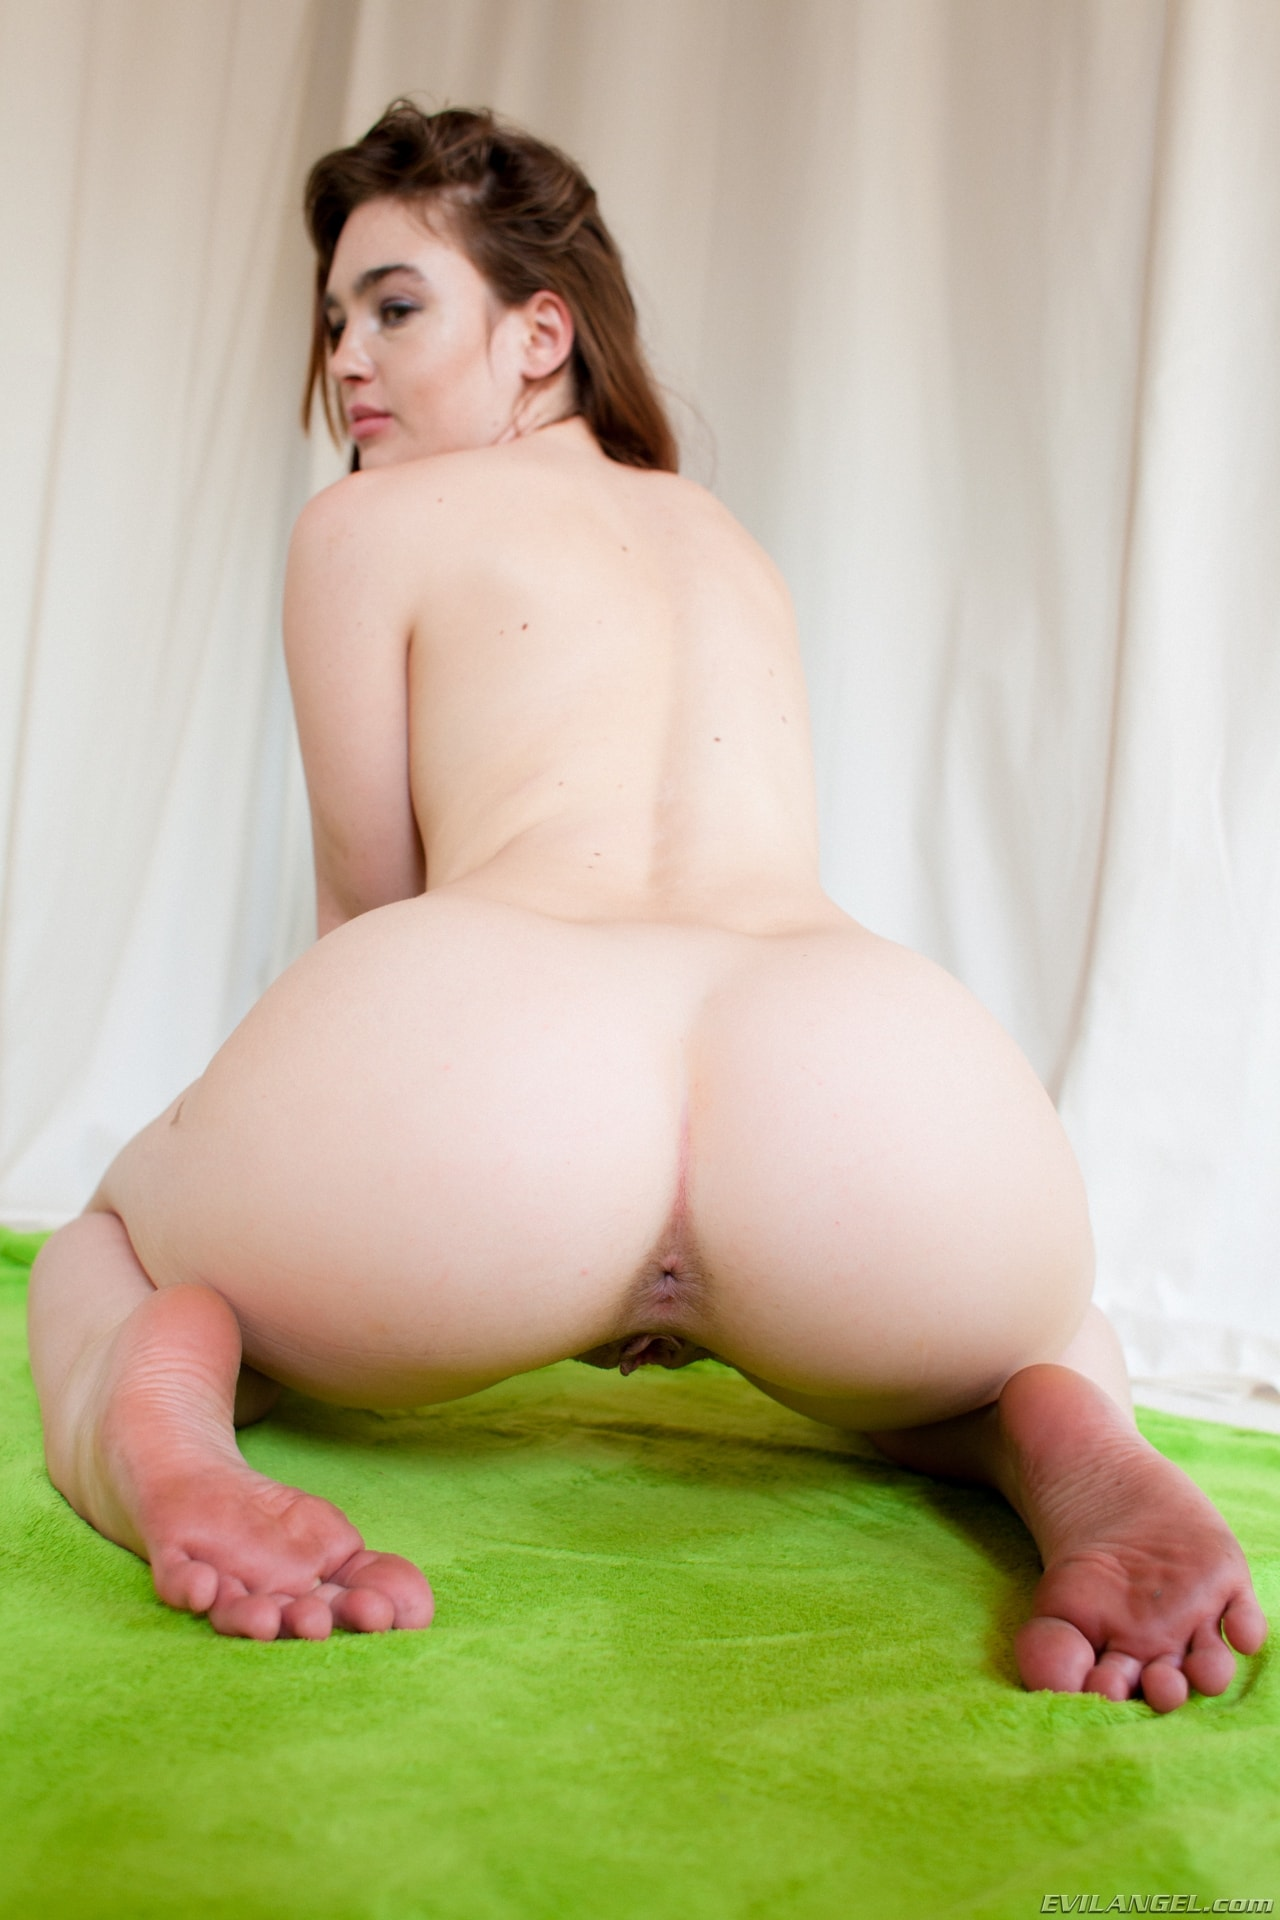 Pussy Licking Until She Cums